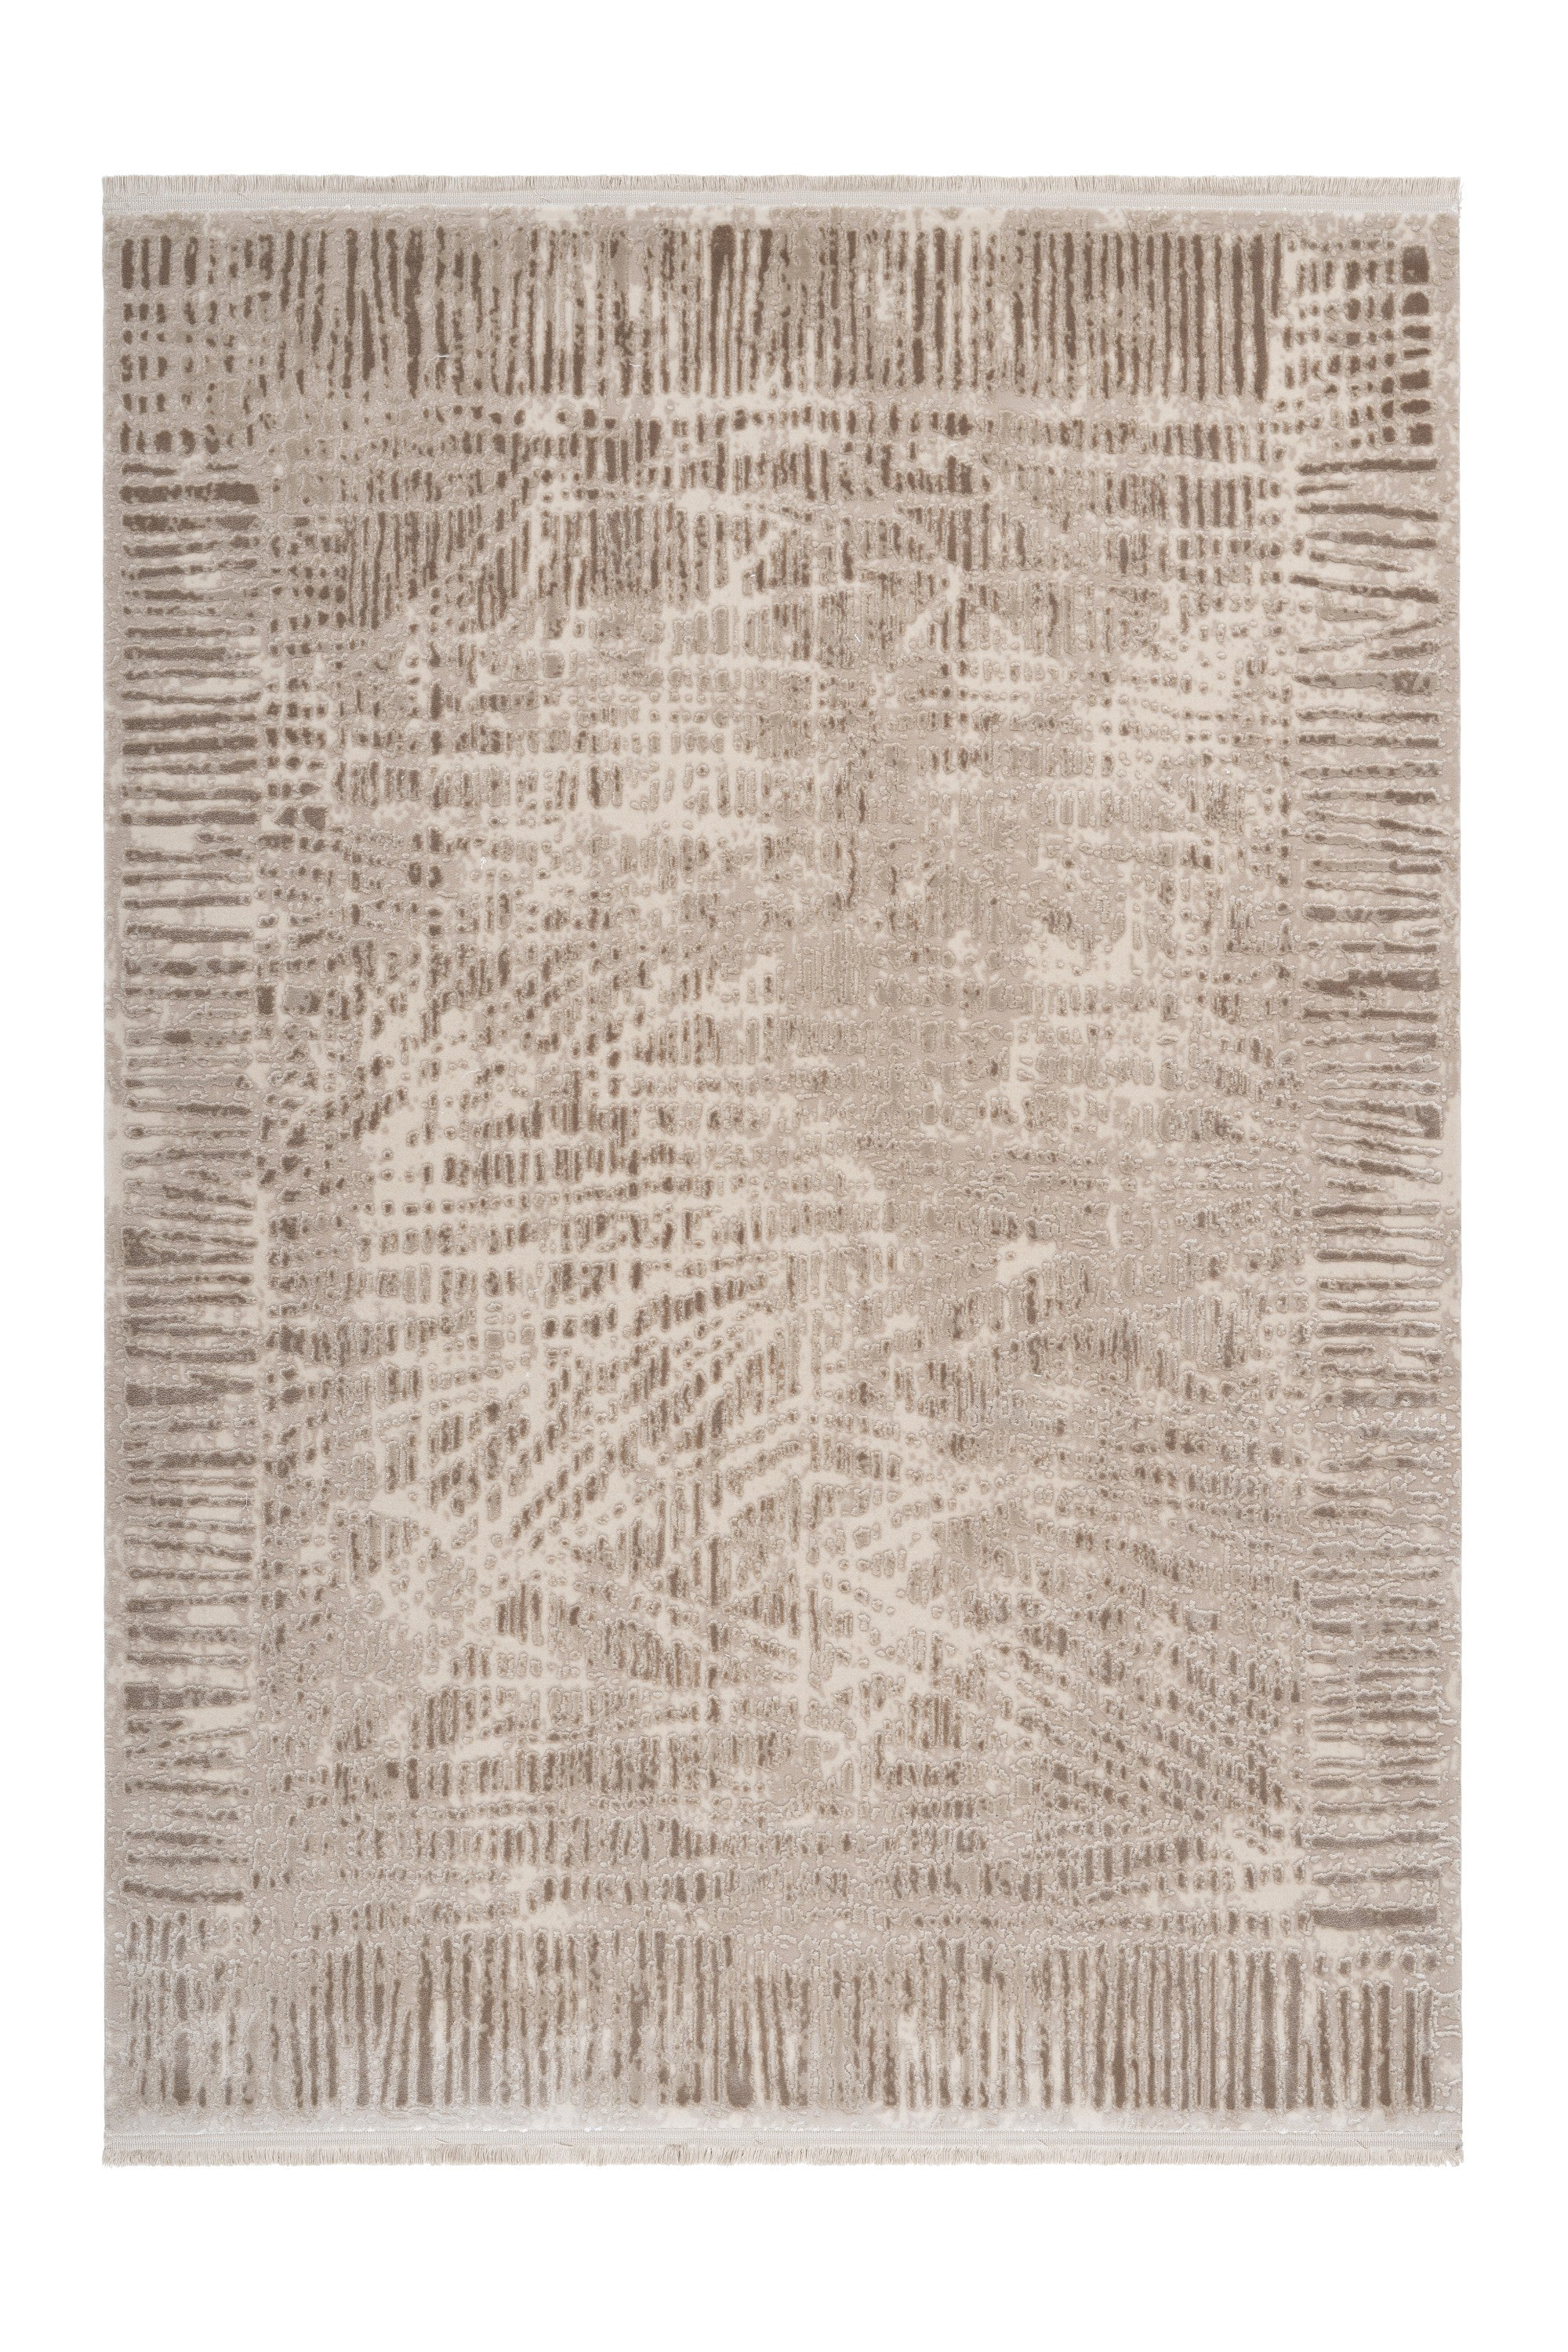 Noblesse 903 Luxury Beige Rug with Abstract design - Lalee Designer Rugs